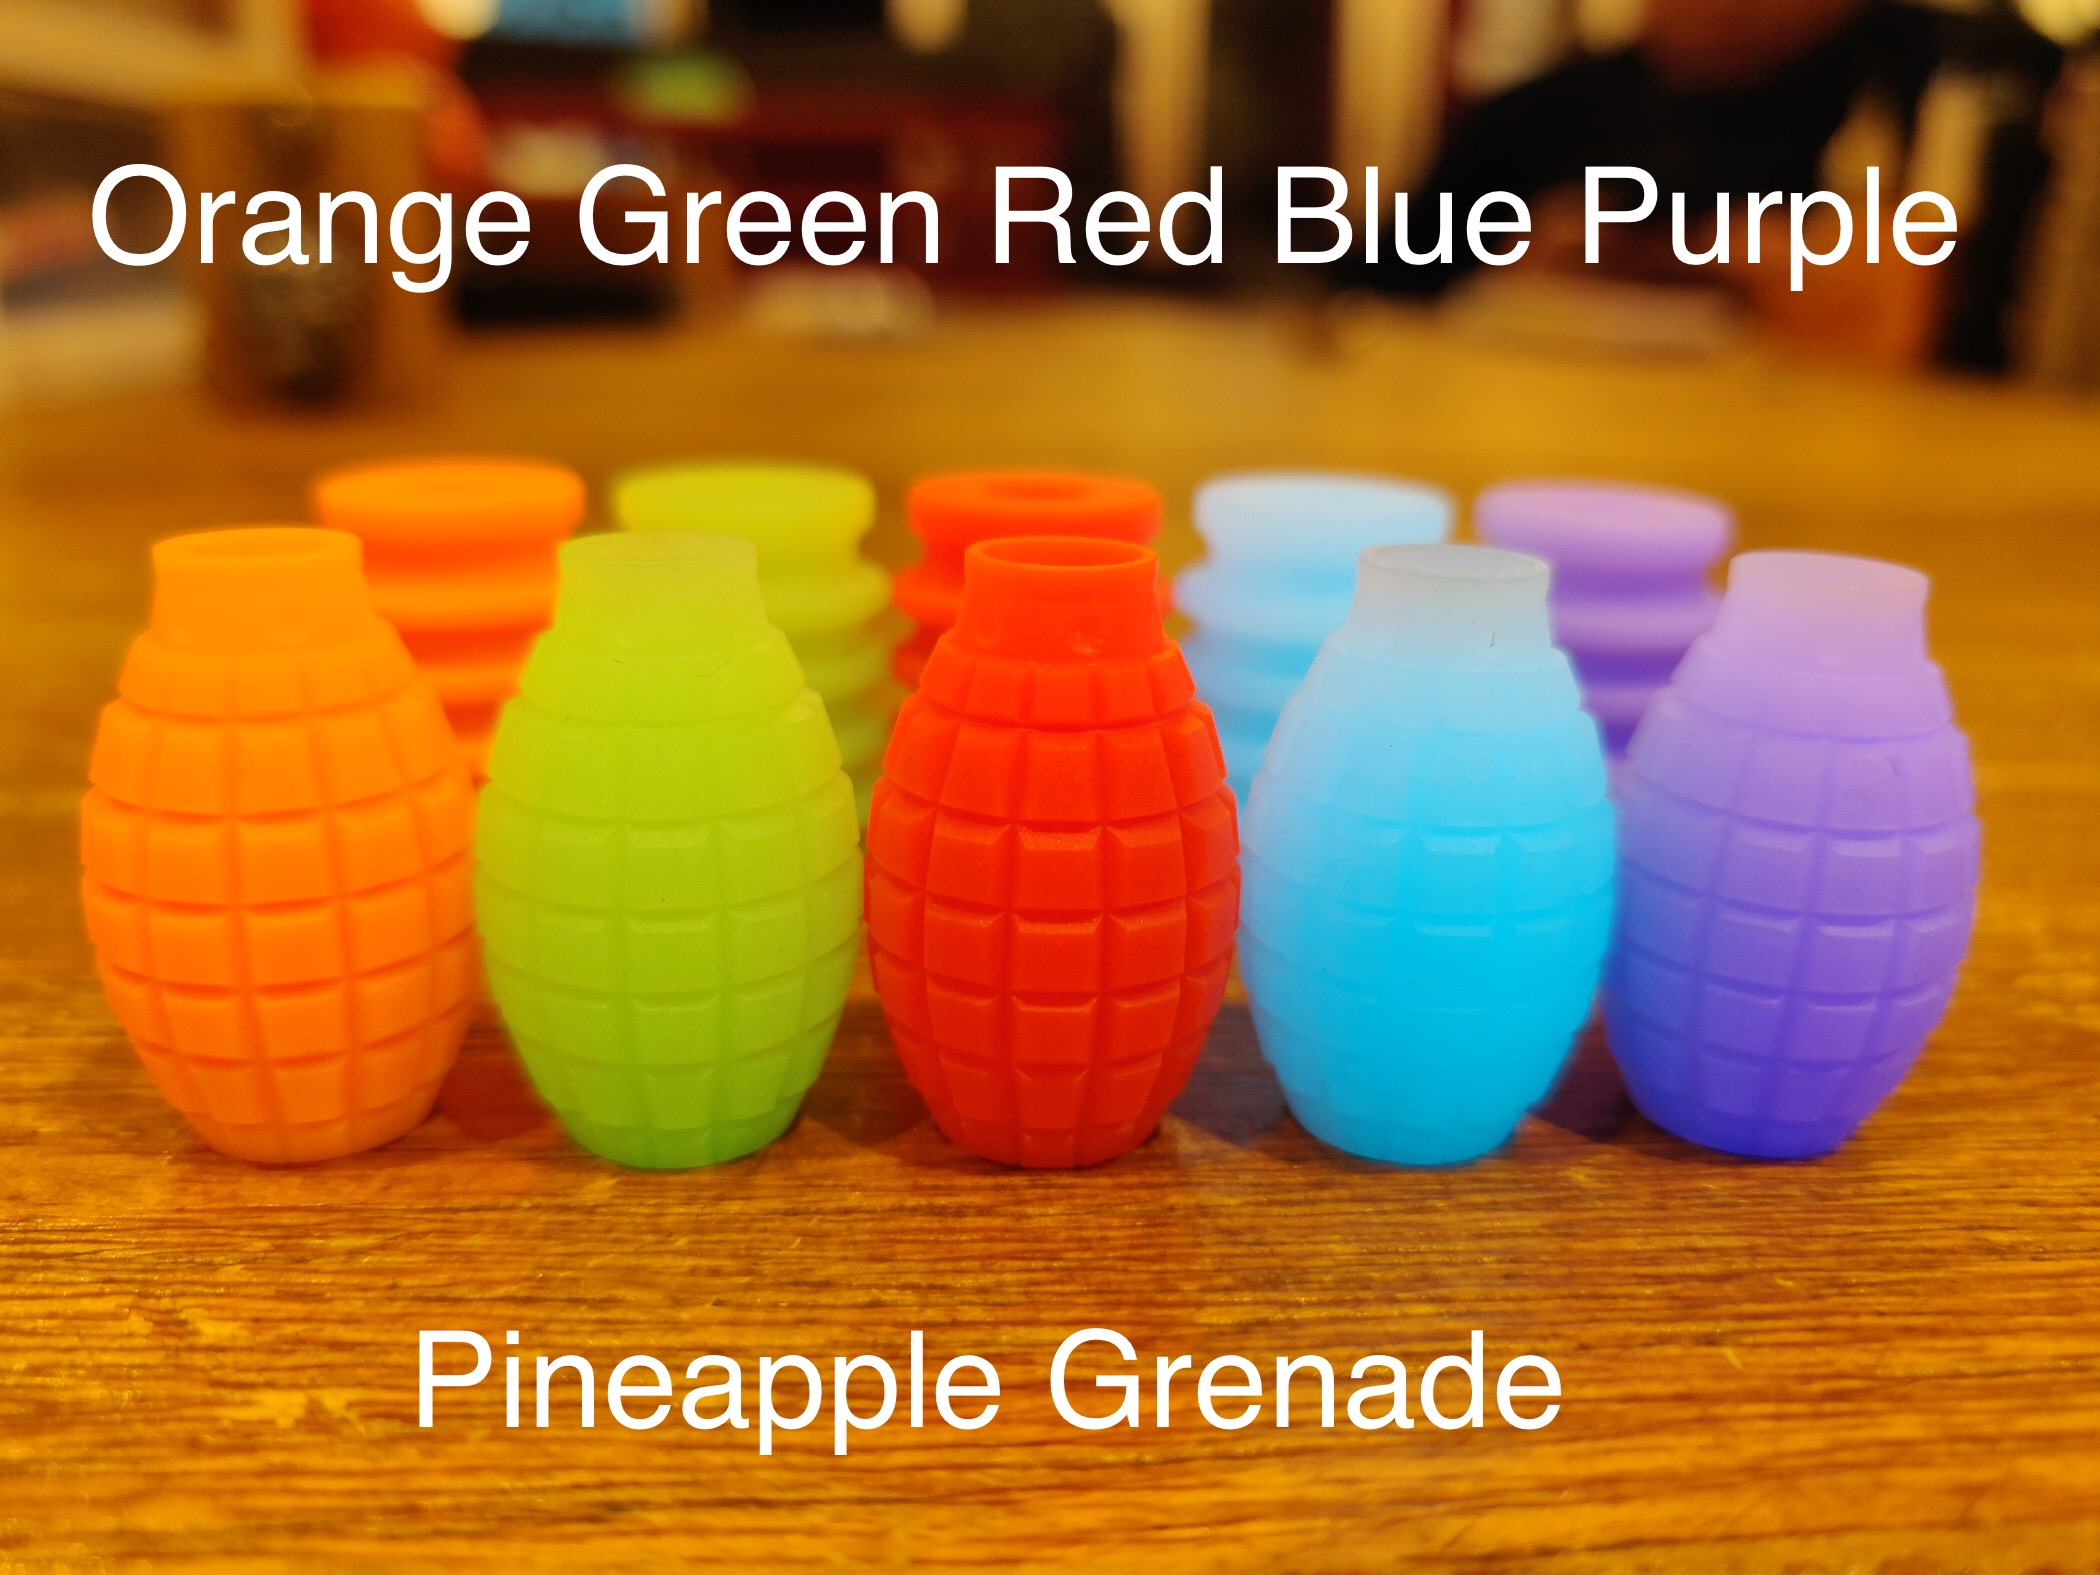 TG Pineapple Grenade